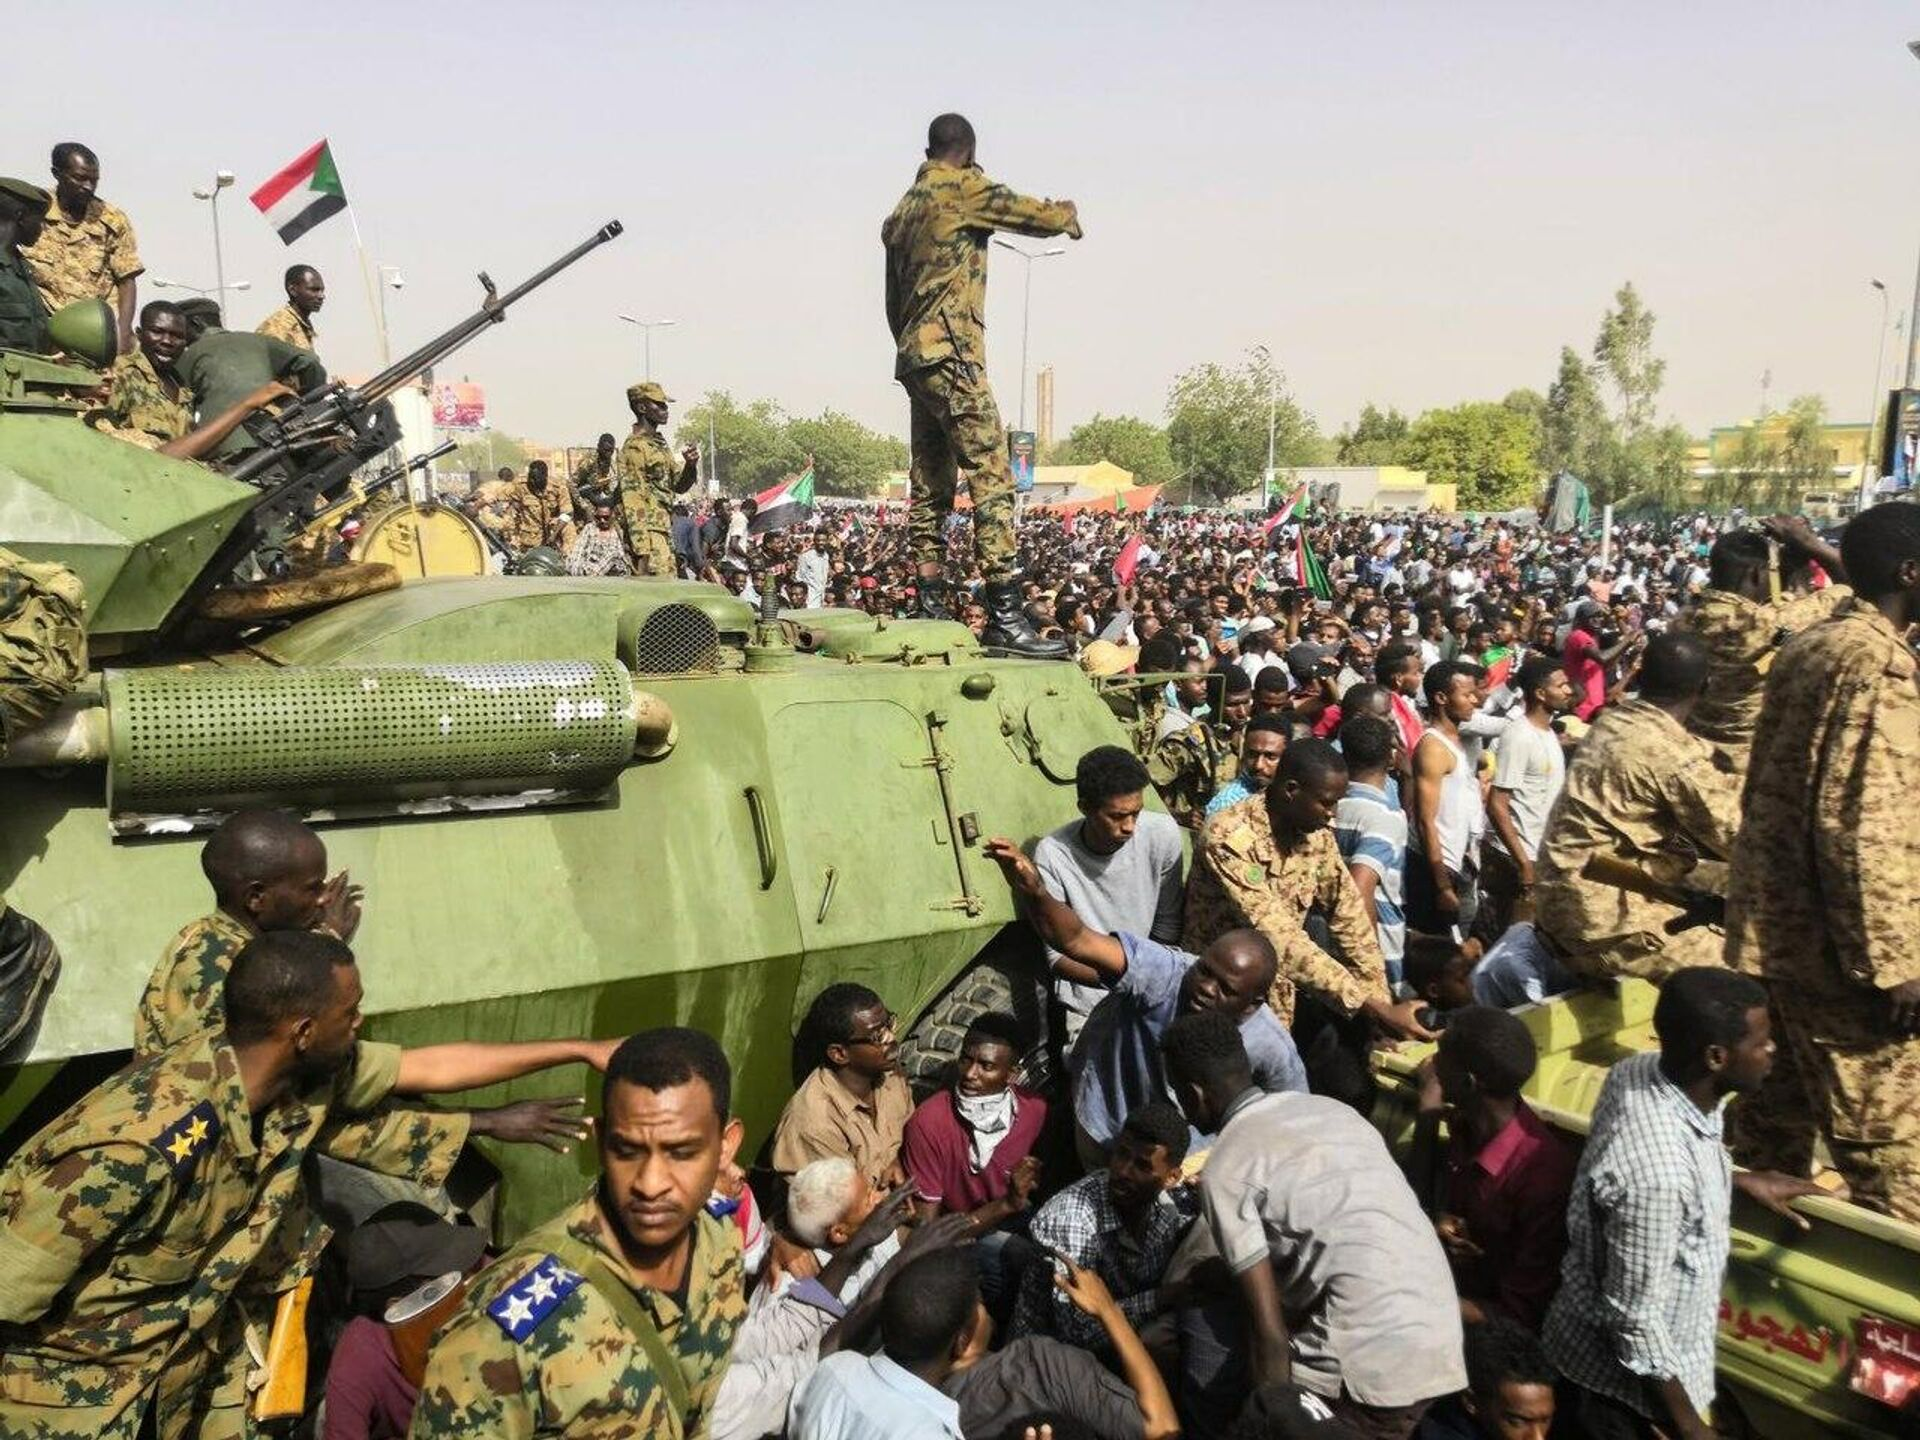 Sudanese soldeirs stand guard around armoured military vehicles as demonstrators continue their protest against the regime near the army headquarters in the Sudanese capital Khartoum (File) - Sputnik International, 1920, 21.09.2021